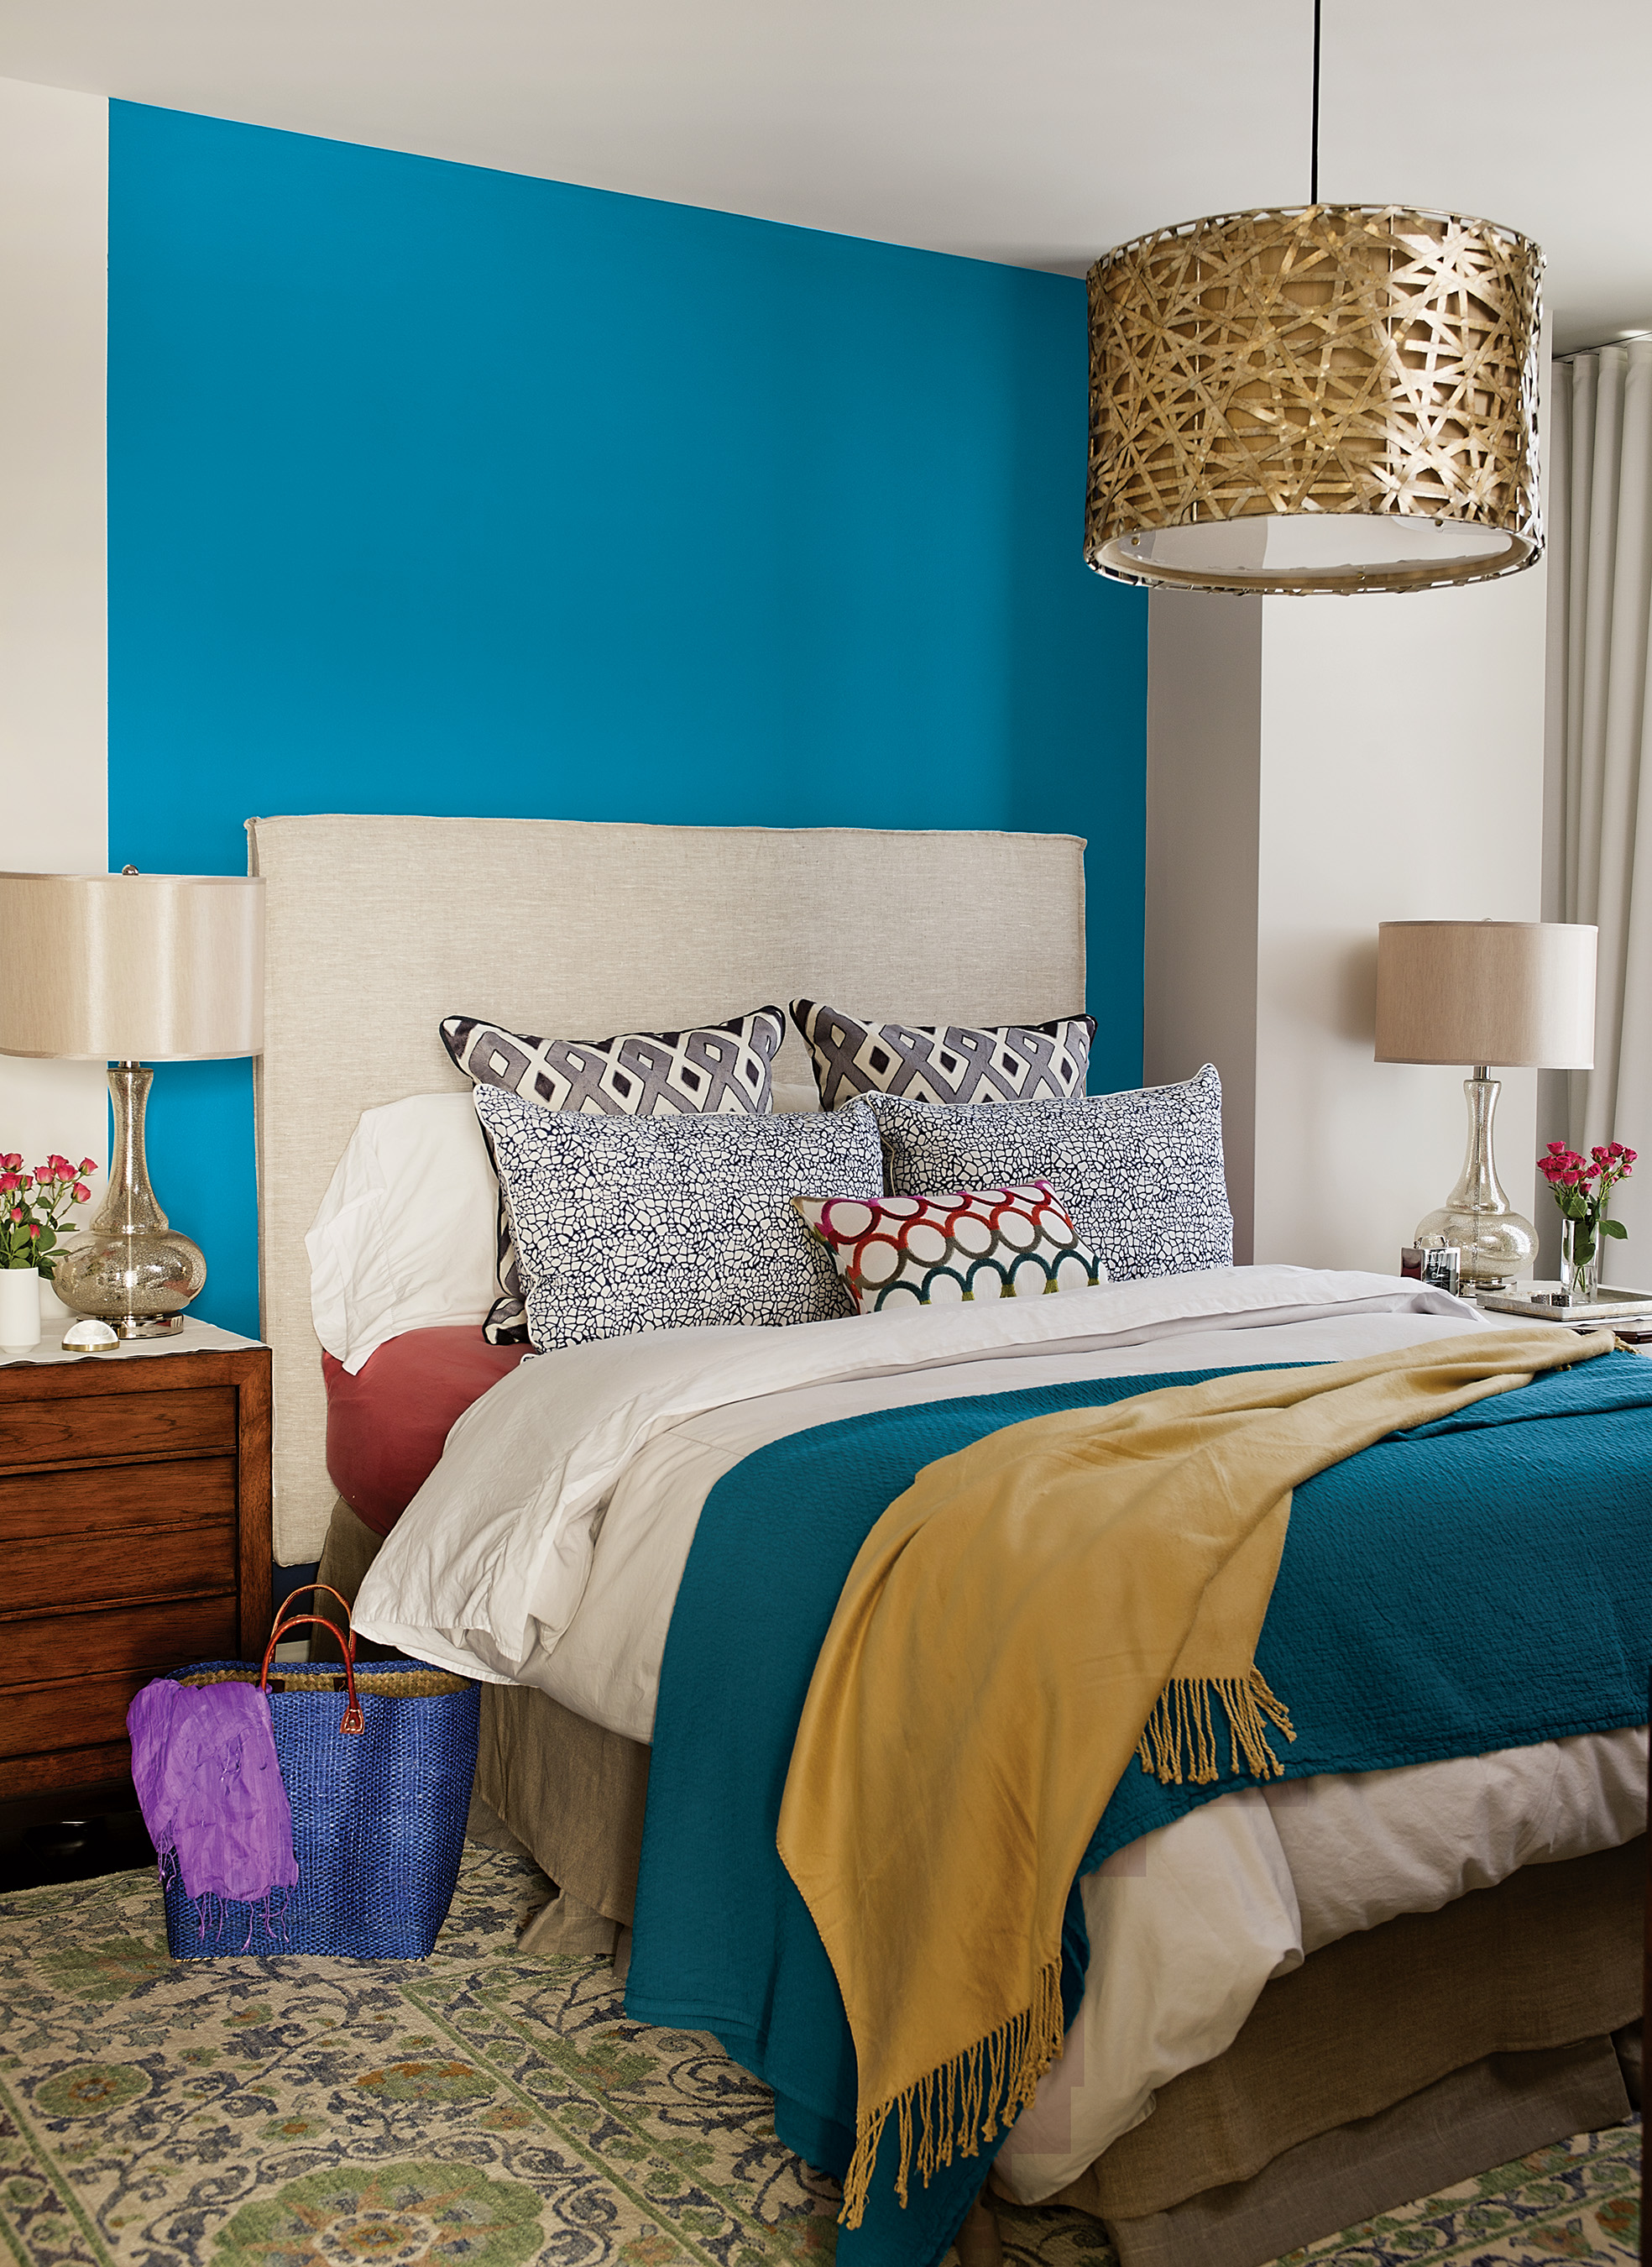 blue paisley named 2015 color of the year by ppg. Black Bedroom Furniture Sets. Home Design Ideas